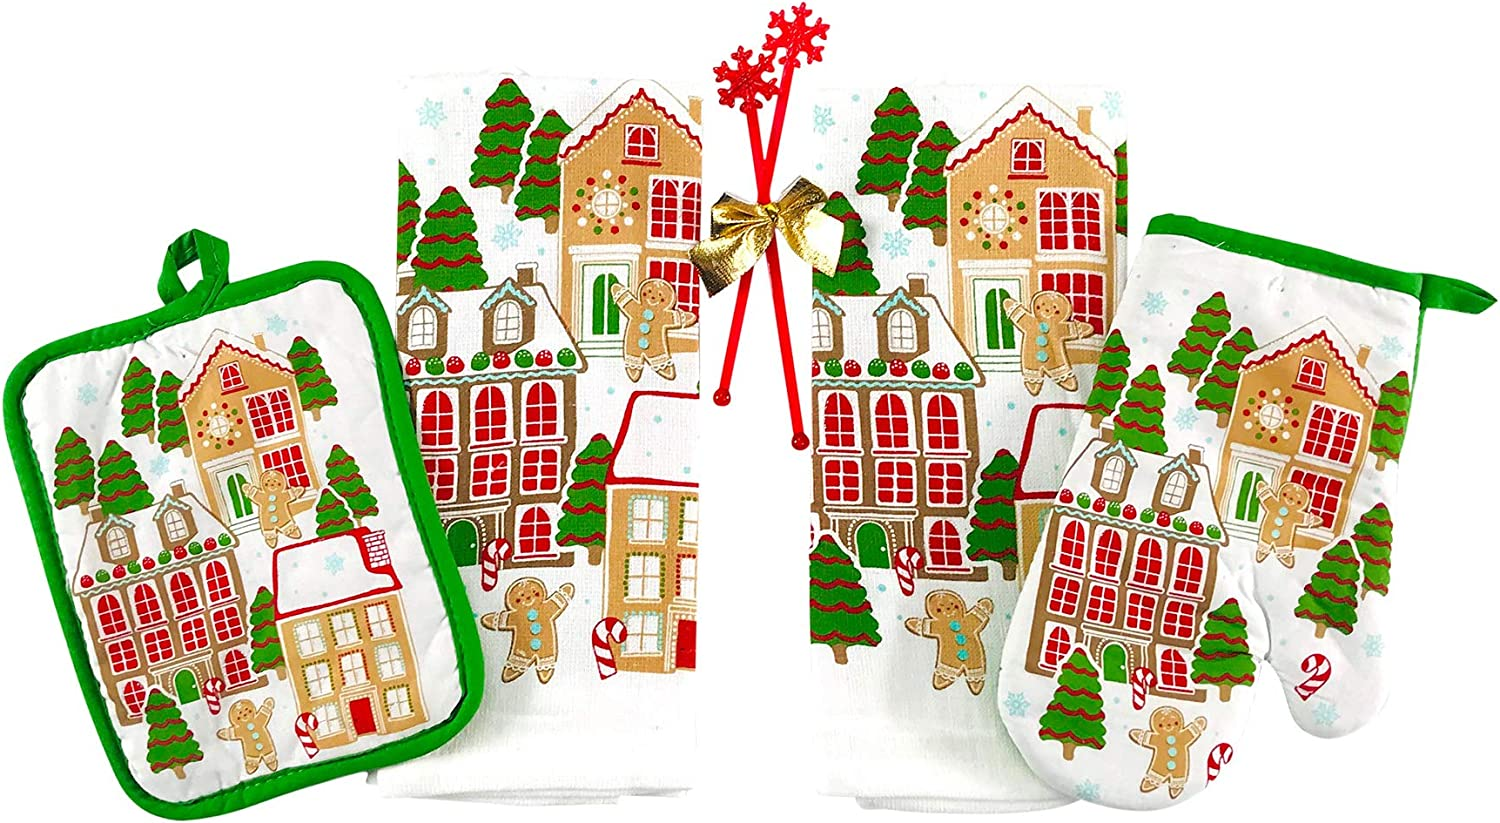 Winter Christmas Kitchen Towels Pot Holders Set: Fun Gingerbread Man in a Gingerbread Land